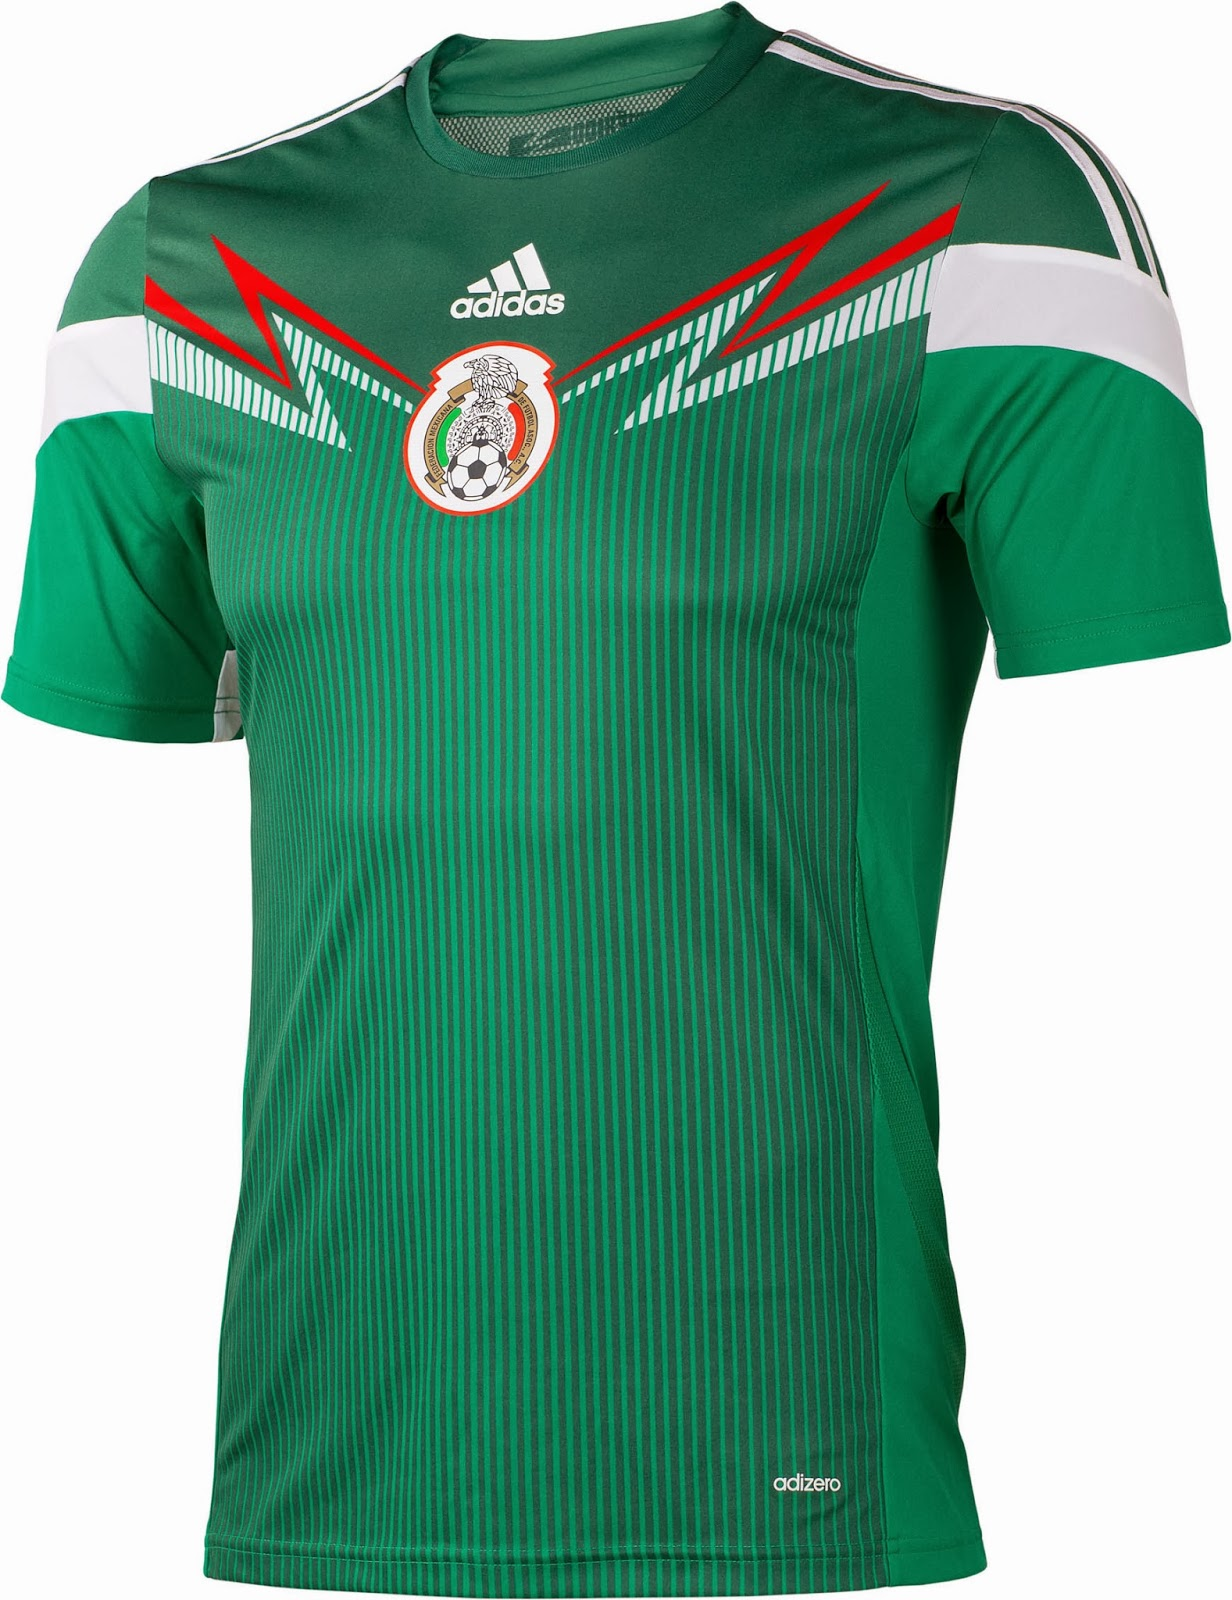 Mexico 2014 World Cup Home Kit (2)